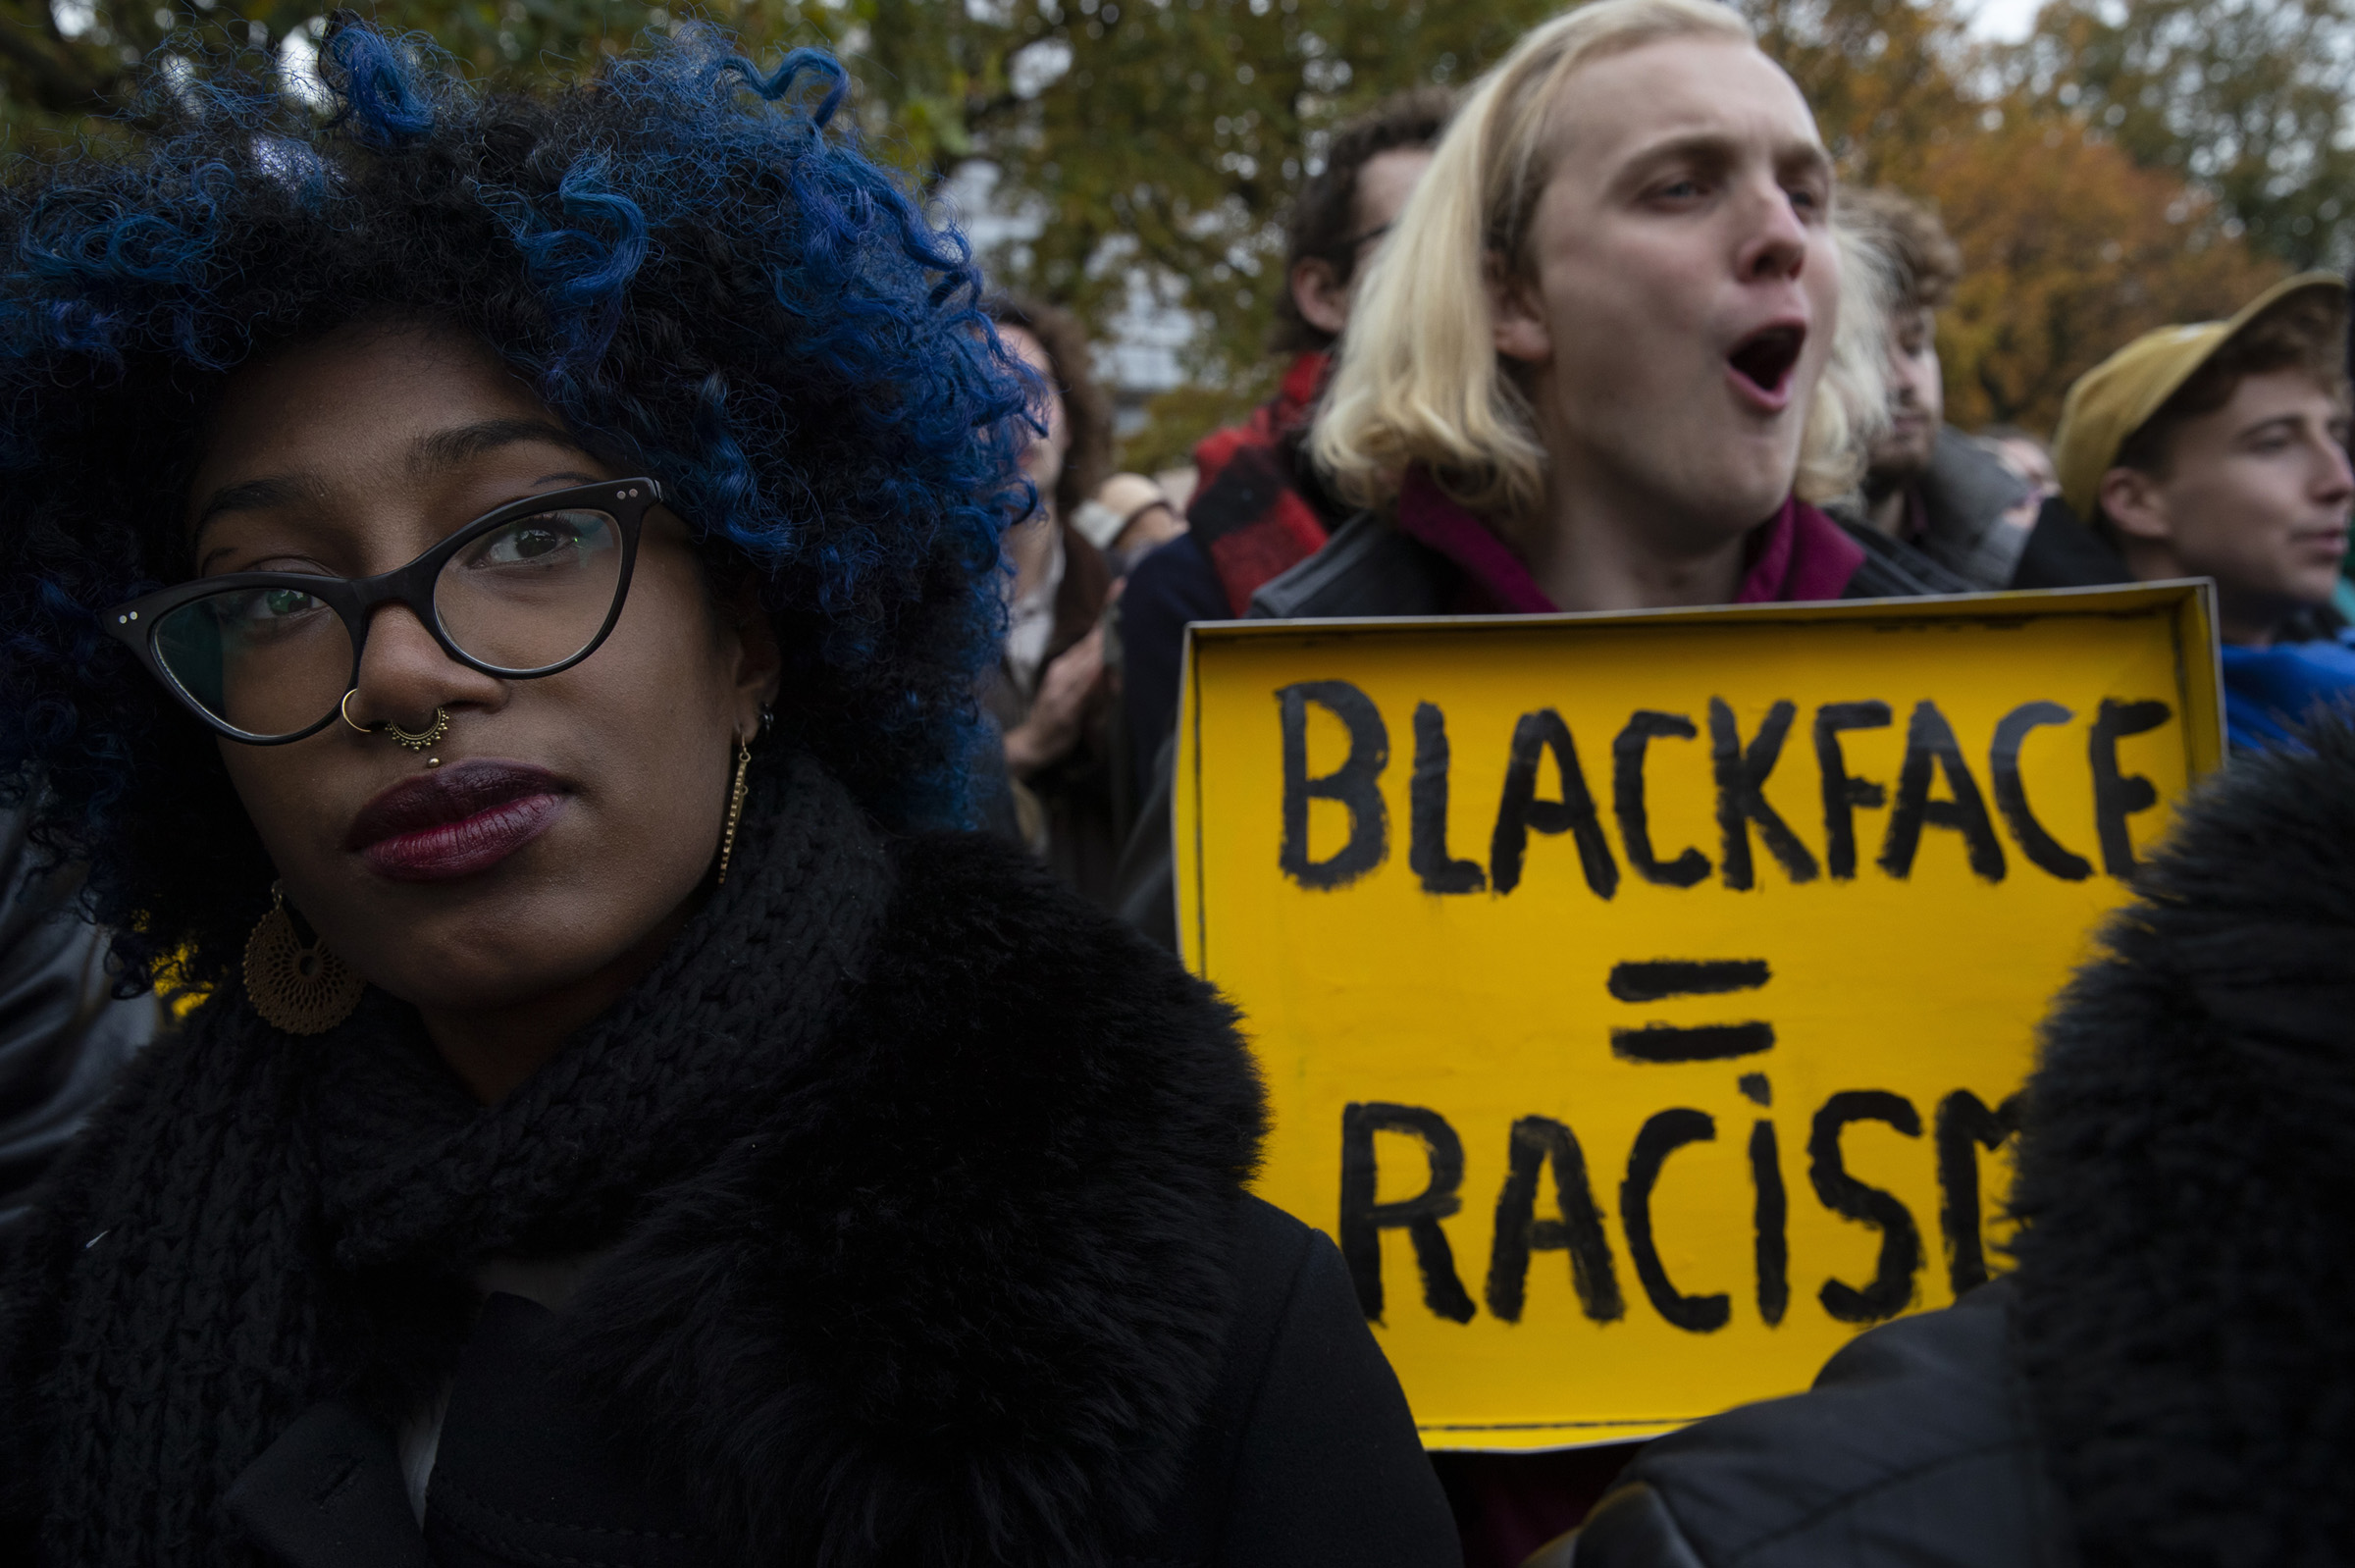 Kick Out Zwarte Piet, or Kick Out Black Pete demonstrators listen to speakers during a gathering in The Hague, Netherlands, on Nov. 16, 2019.